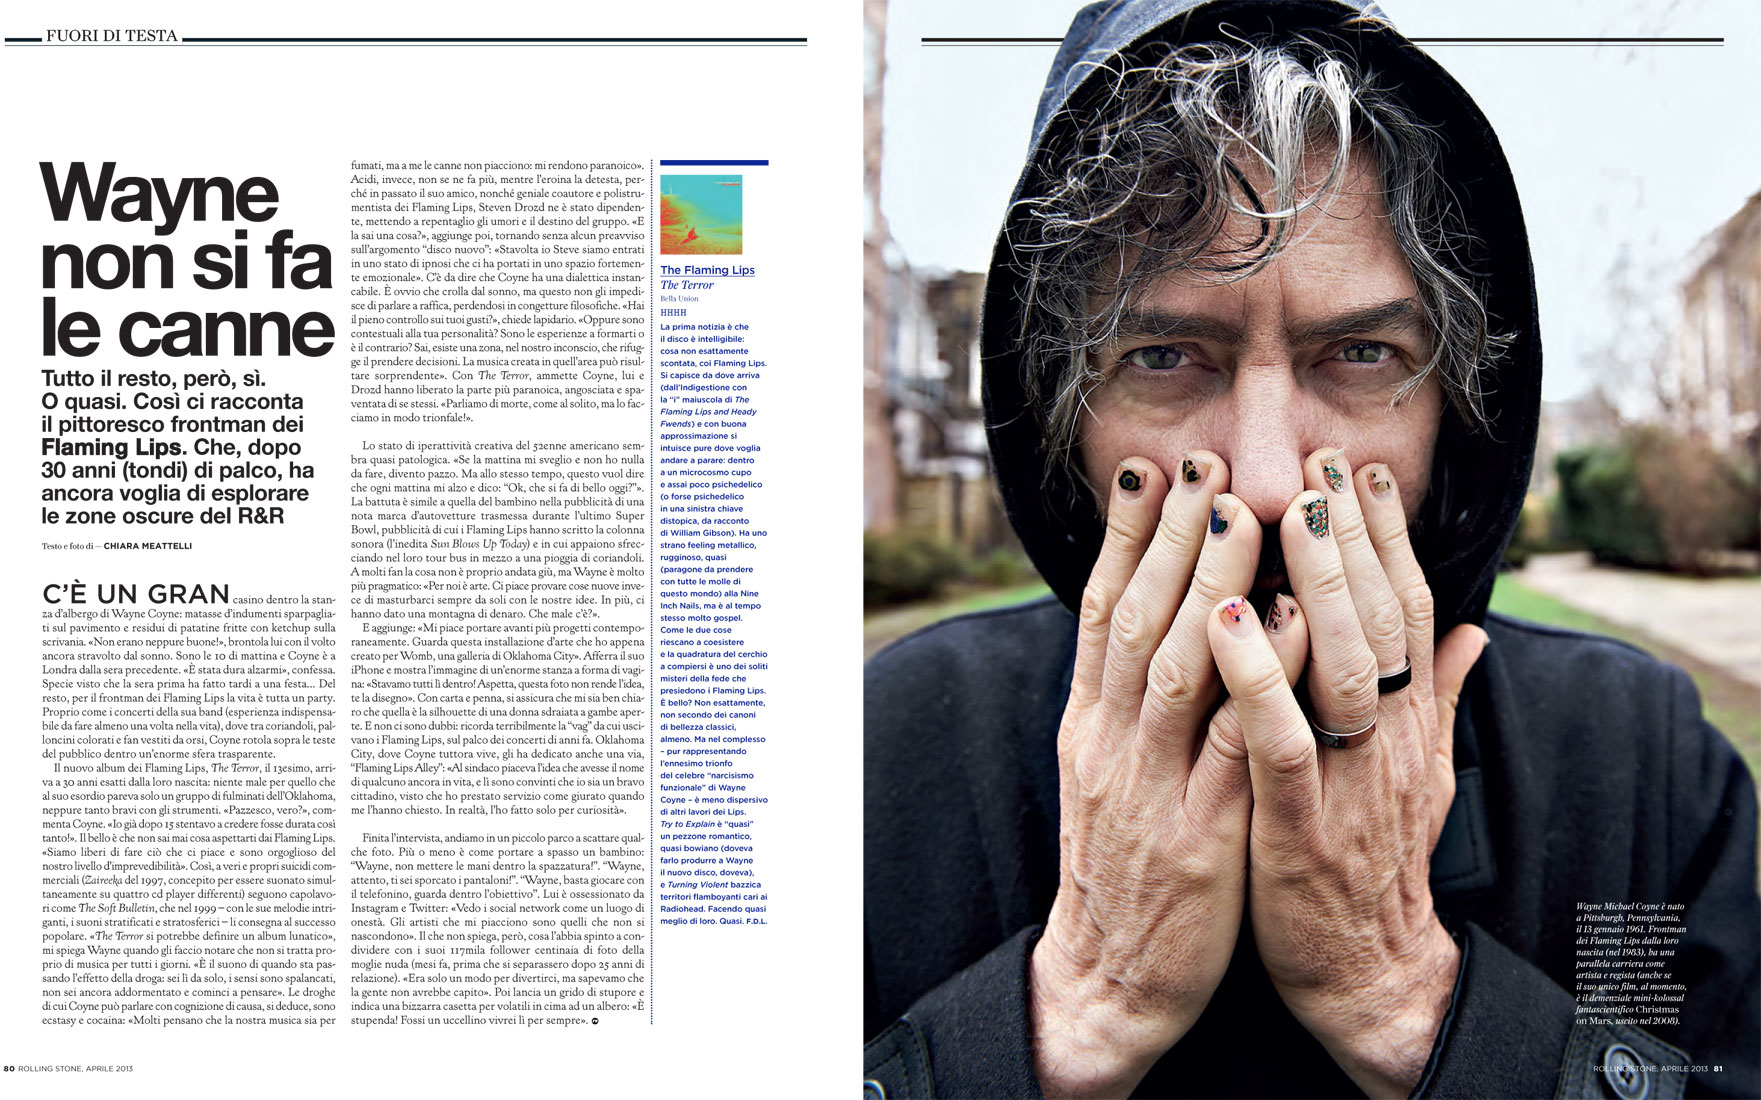 Rolling Stone magazine: Flaming Lips interview & photo